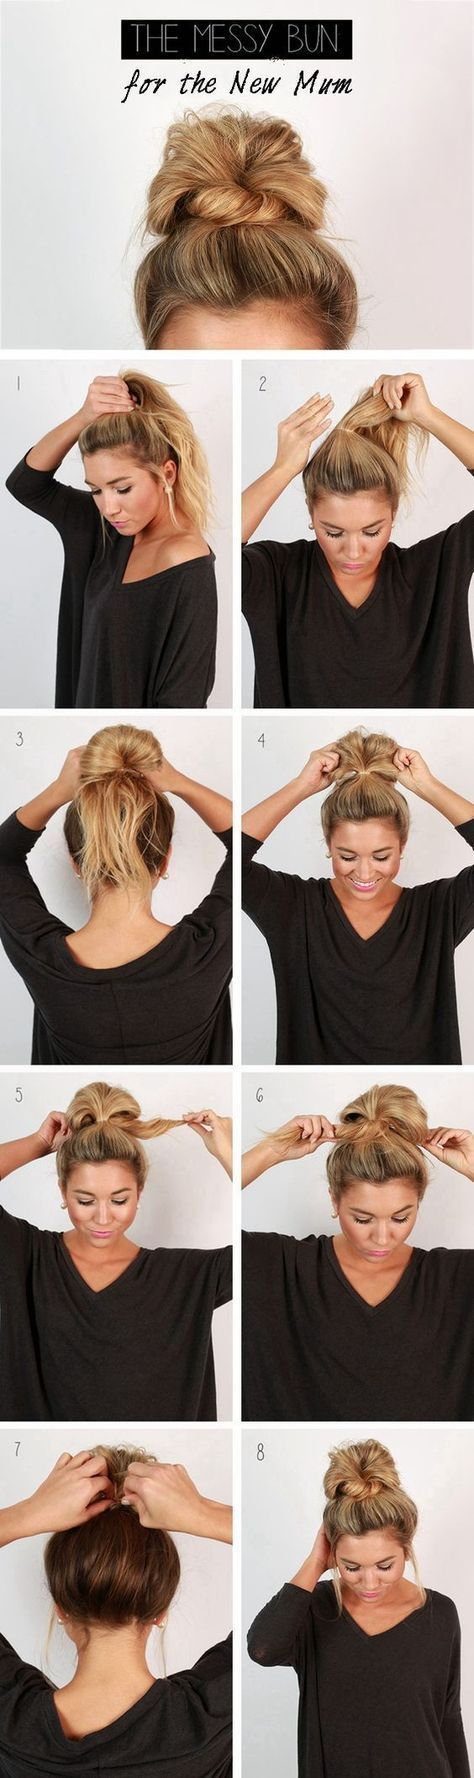 hairstyles you can make in less than mins hair style makeup